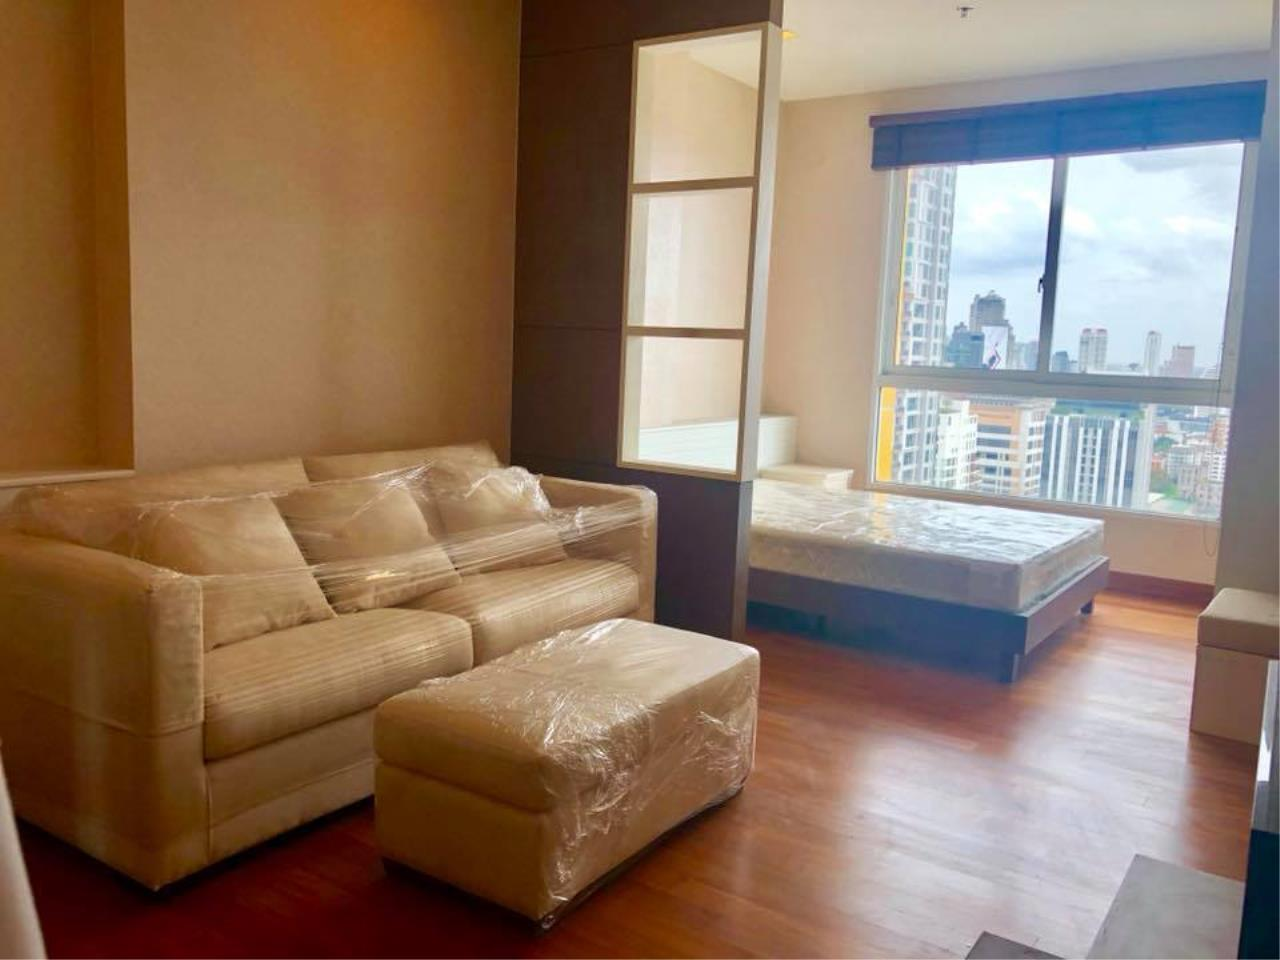 Quality Life Property Agency's S A L E !! || IVY SATHORN 10|| 1BR 33.64 Sq.m. NEW UNIT!! 2